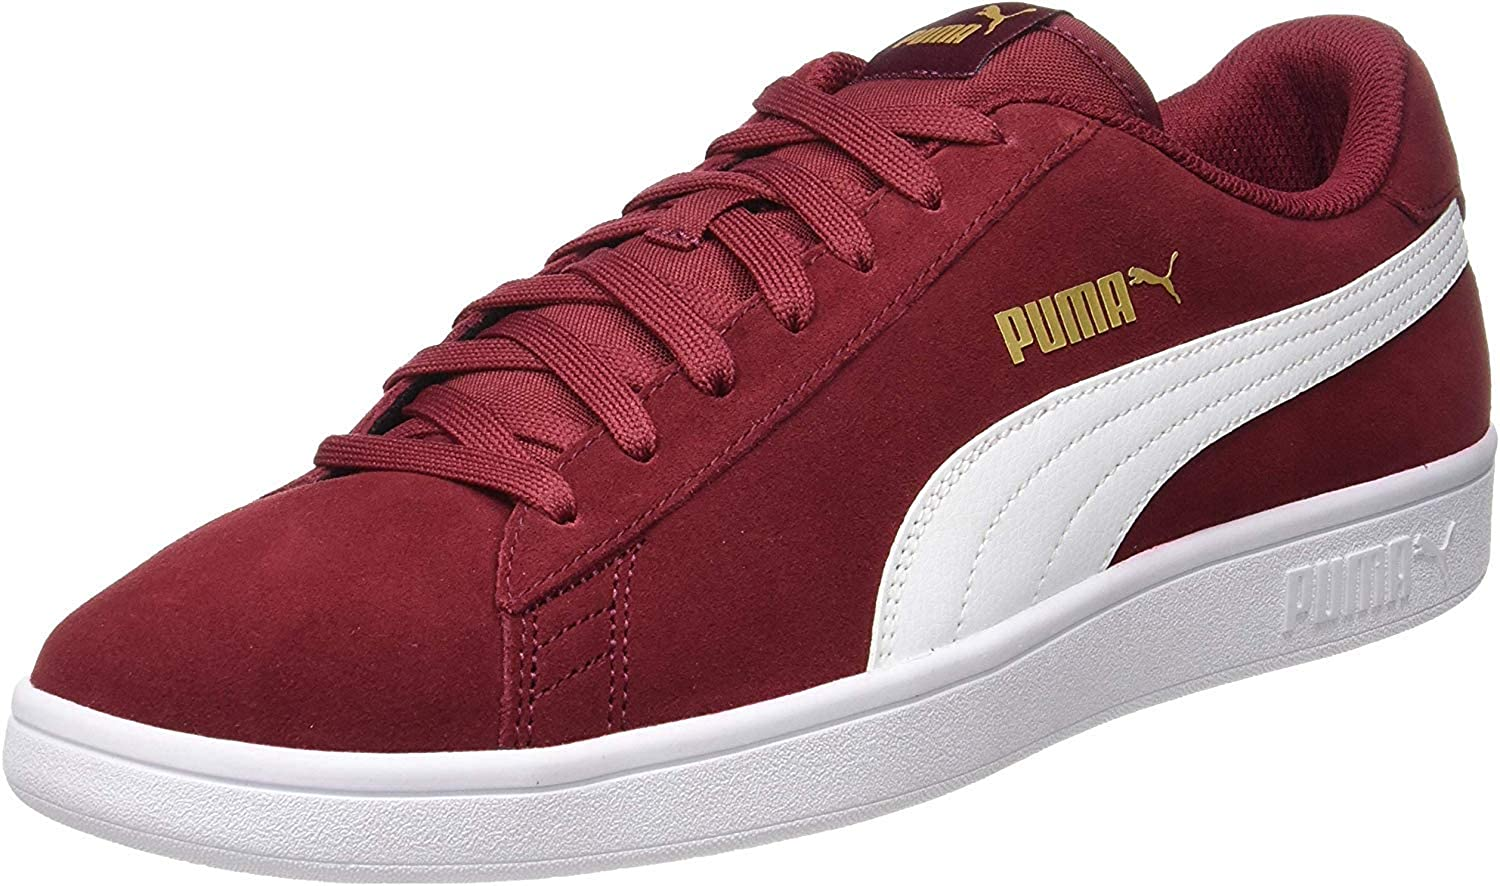 PUMA New Orleans Mall Men's Low-Top OFFer Trainers